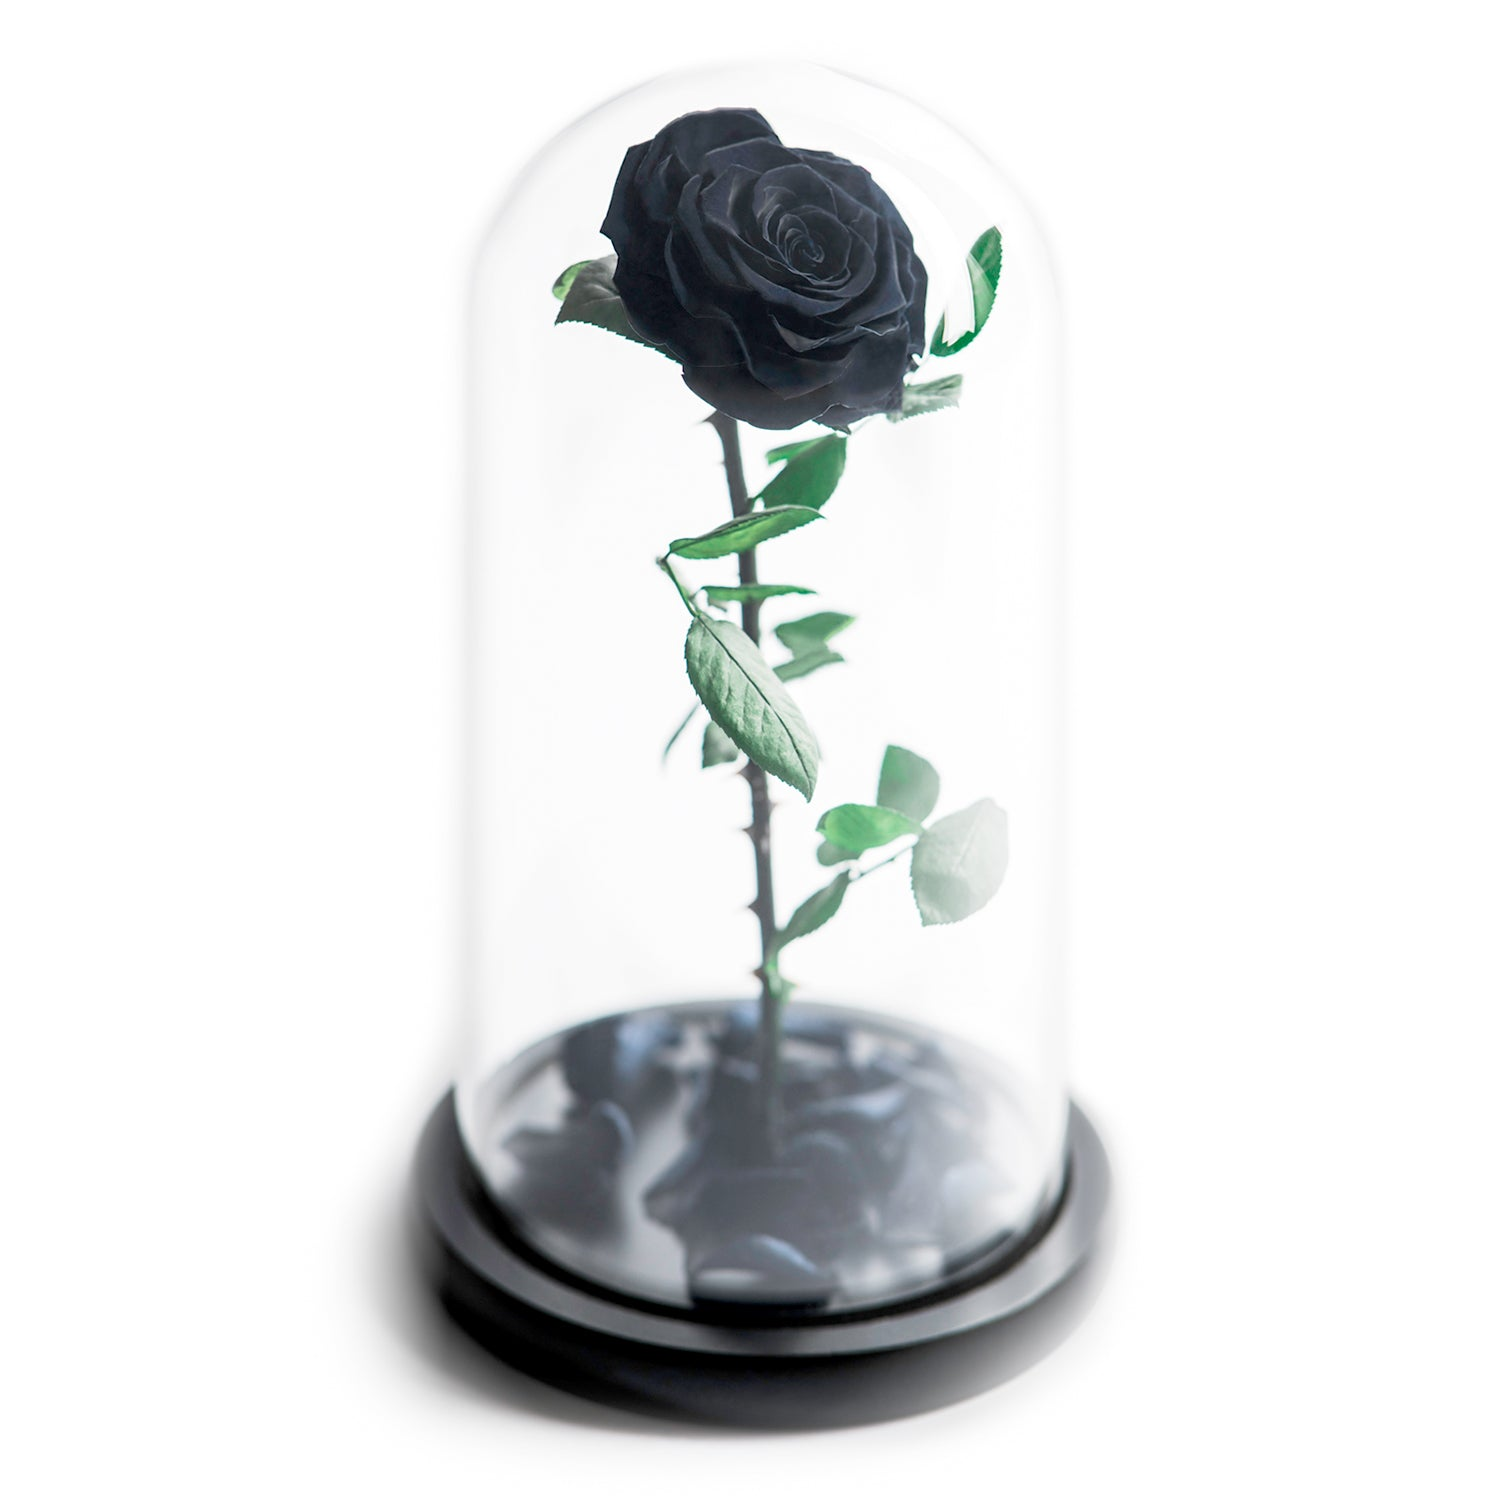 The Beauty and the Beast contains one black eternity rose, picked at the point of perfection and preserved to last at least one year. Rose in glass dome